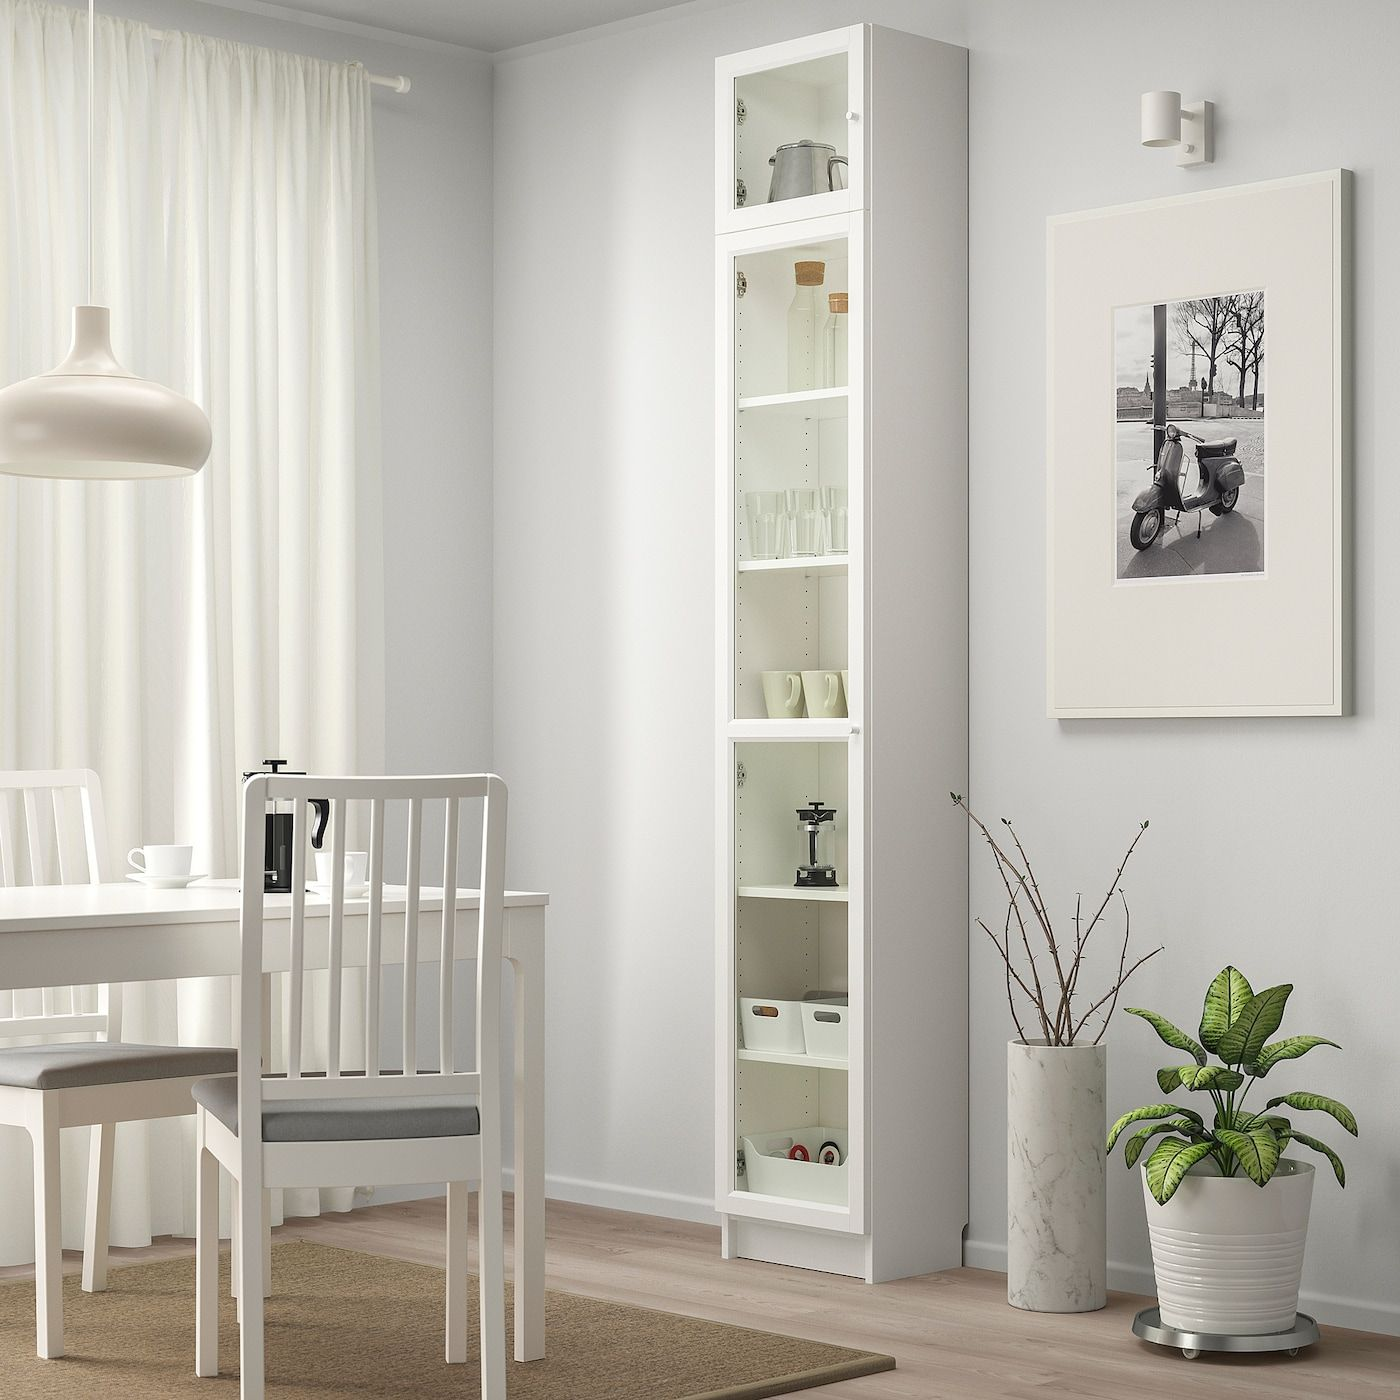 Billy Oxberg Bookcase With Glass Door White Glass 15 3 4x11 3 4x93 1 4 Ikea In 2020 Bookcase With Glass Doors Billy Bookcase Bookcase